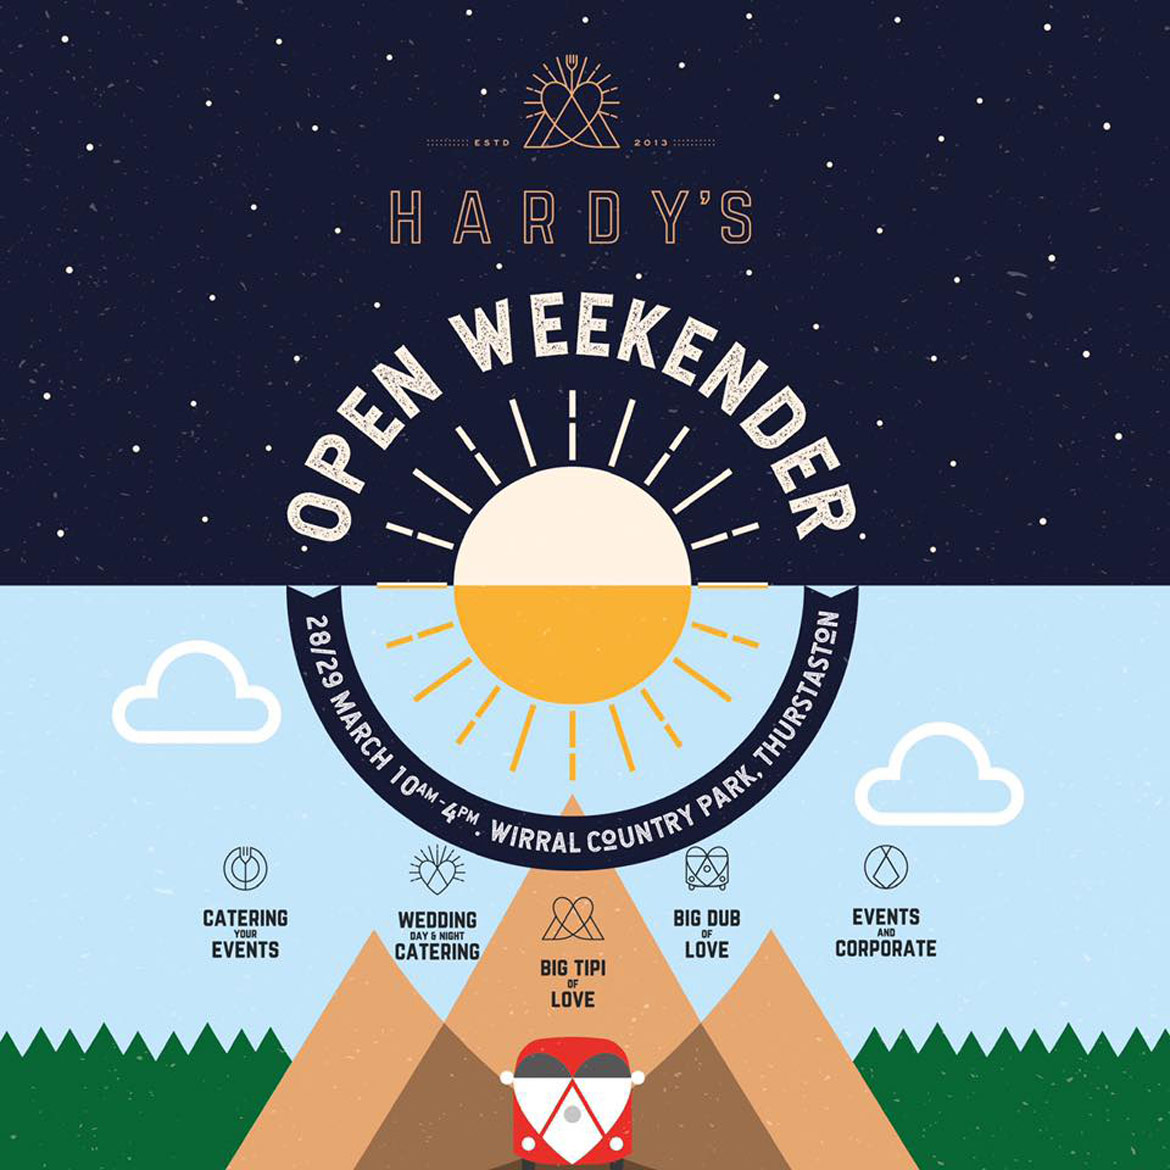 Hardy's Open Weekender tipi & catering event